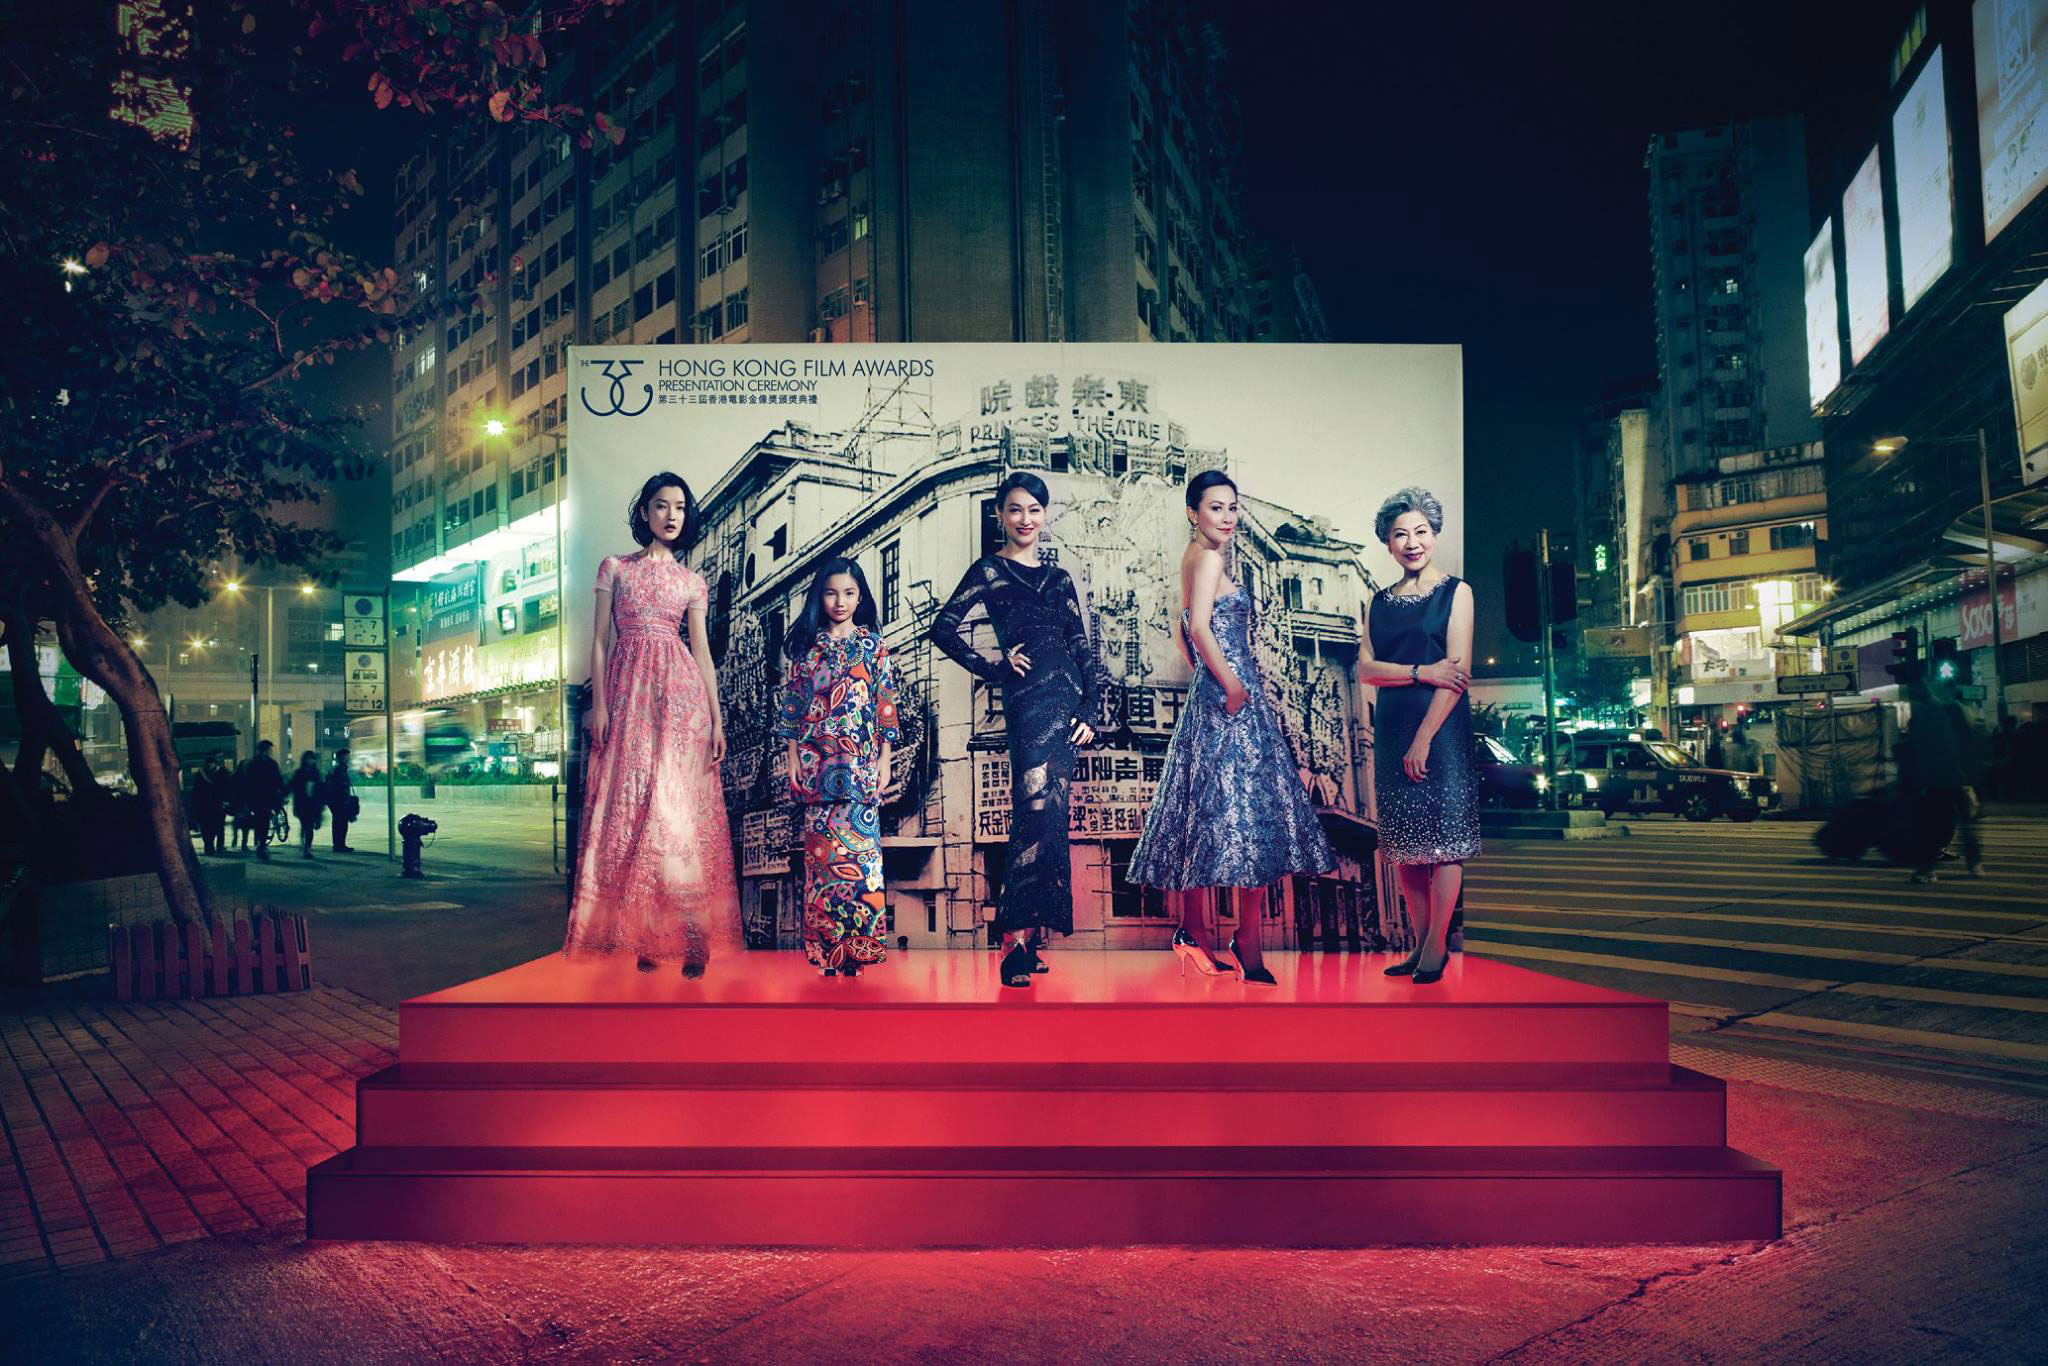 Hong Kong Film Awards 2014 supporting actress nominees